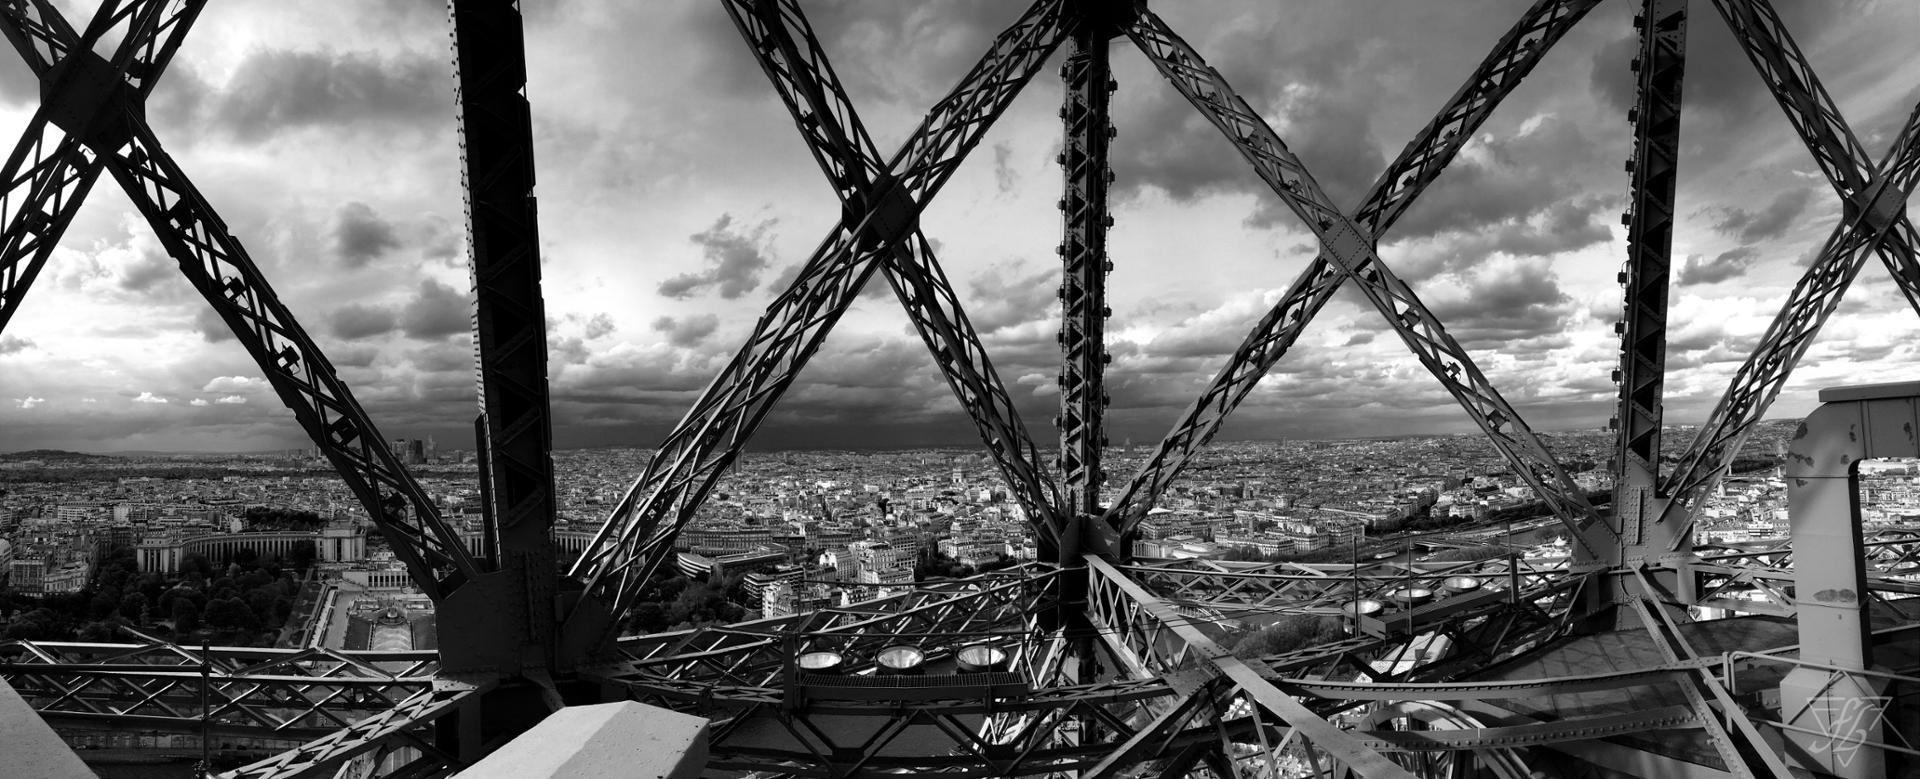 In the Eiffel Tower